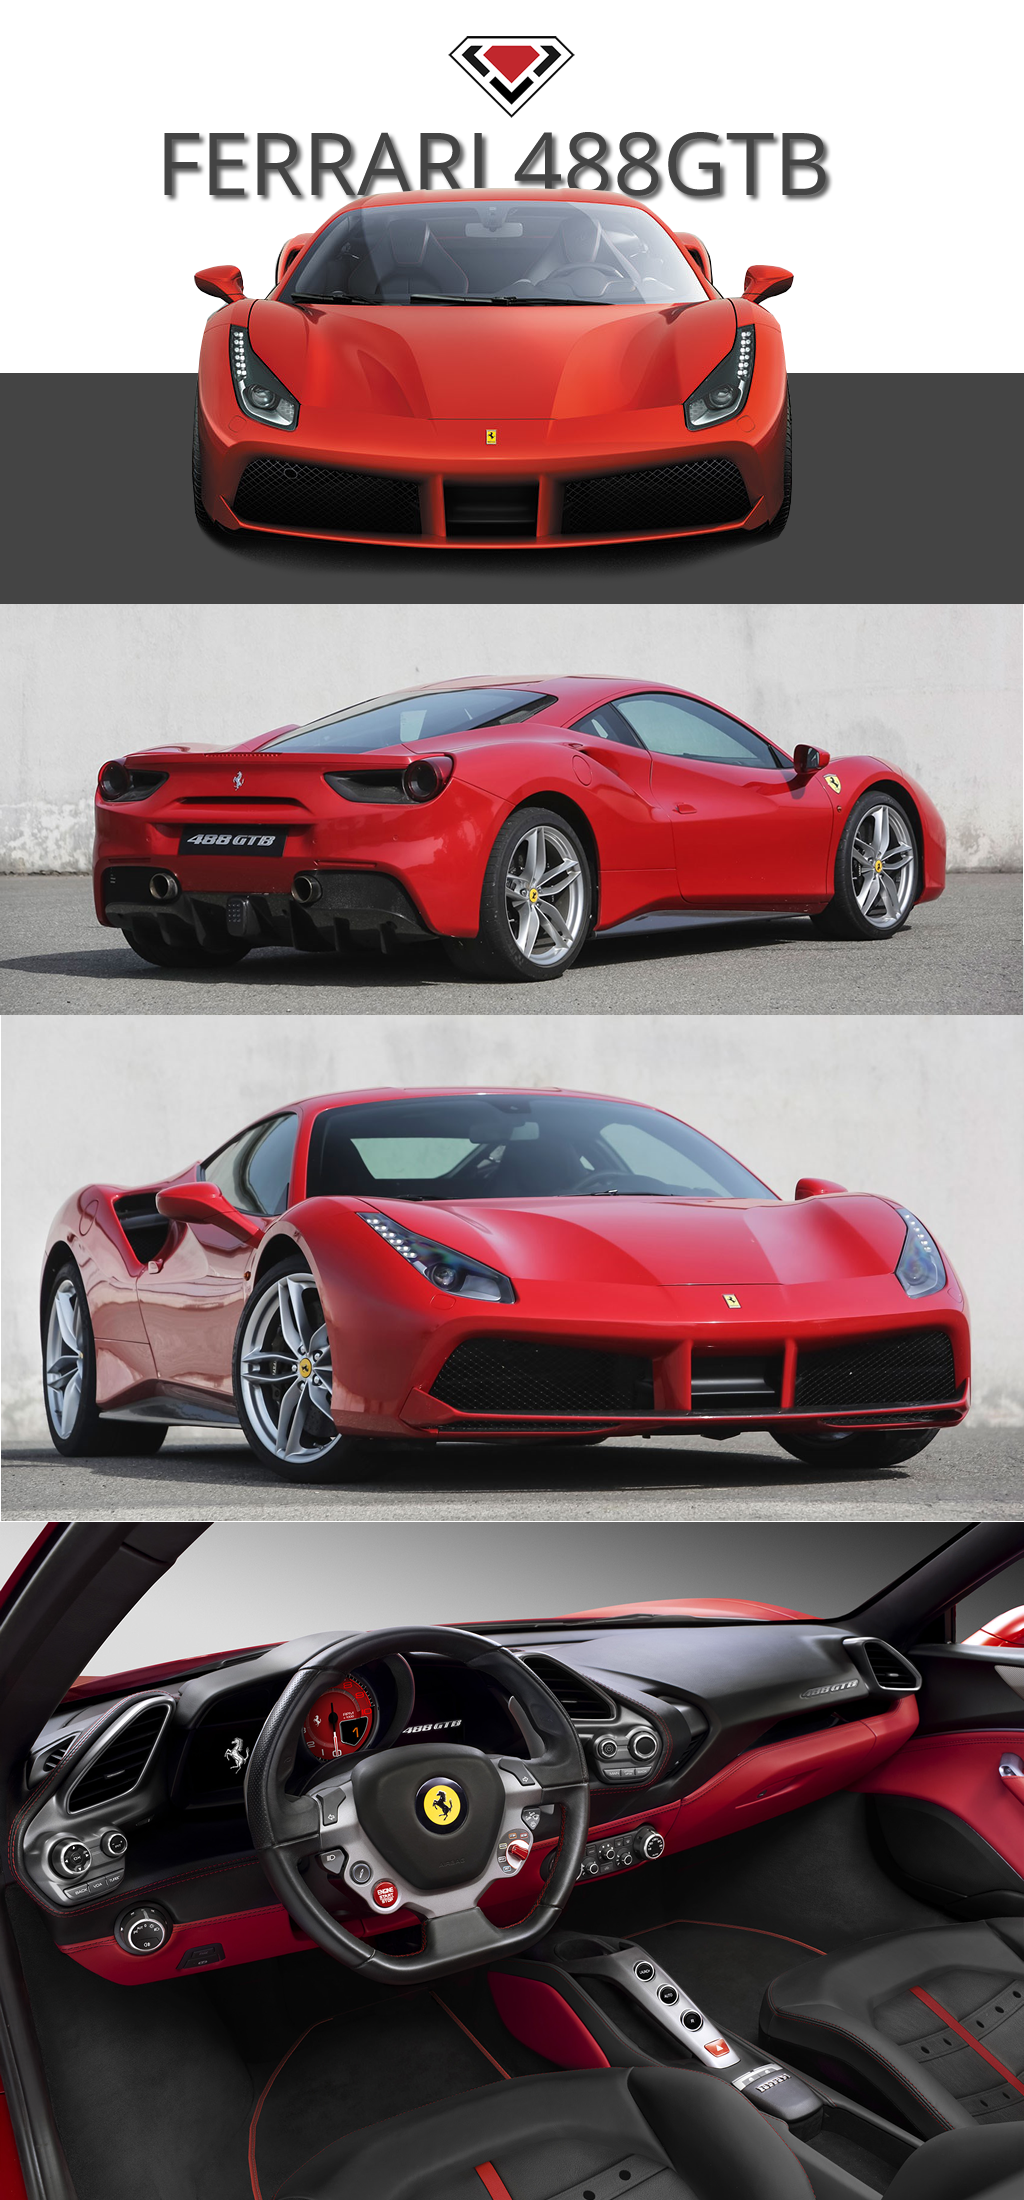 The Ferrari 488gtb A New Chapter In The History Of 8 Cylinder The 488 Gtb Name Marks A Return To The Classic Ferrari Model Designation With The 488 In